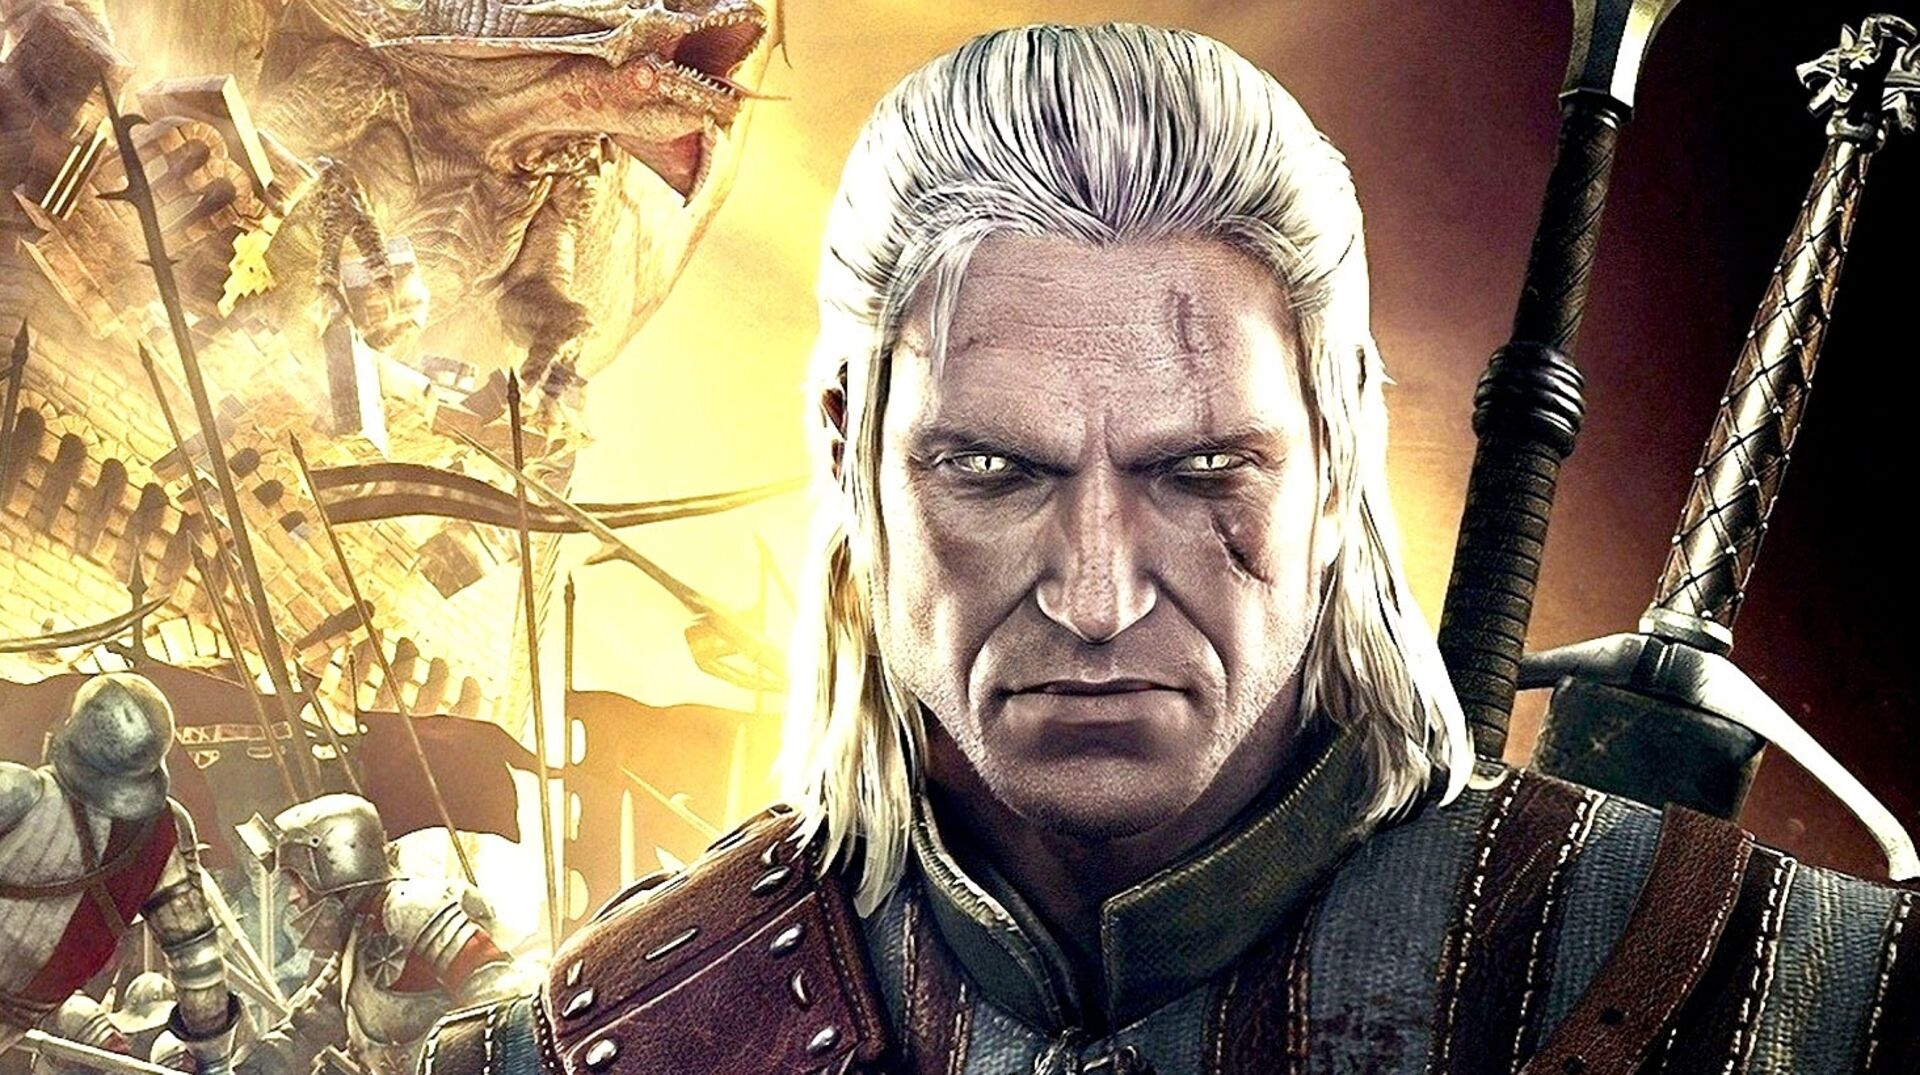 2020 Vision The Witcher 2 Was A Stunning Tech Achievement That Still Looks Great Today Eurogamer Net